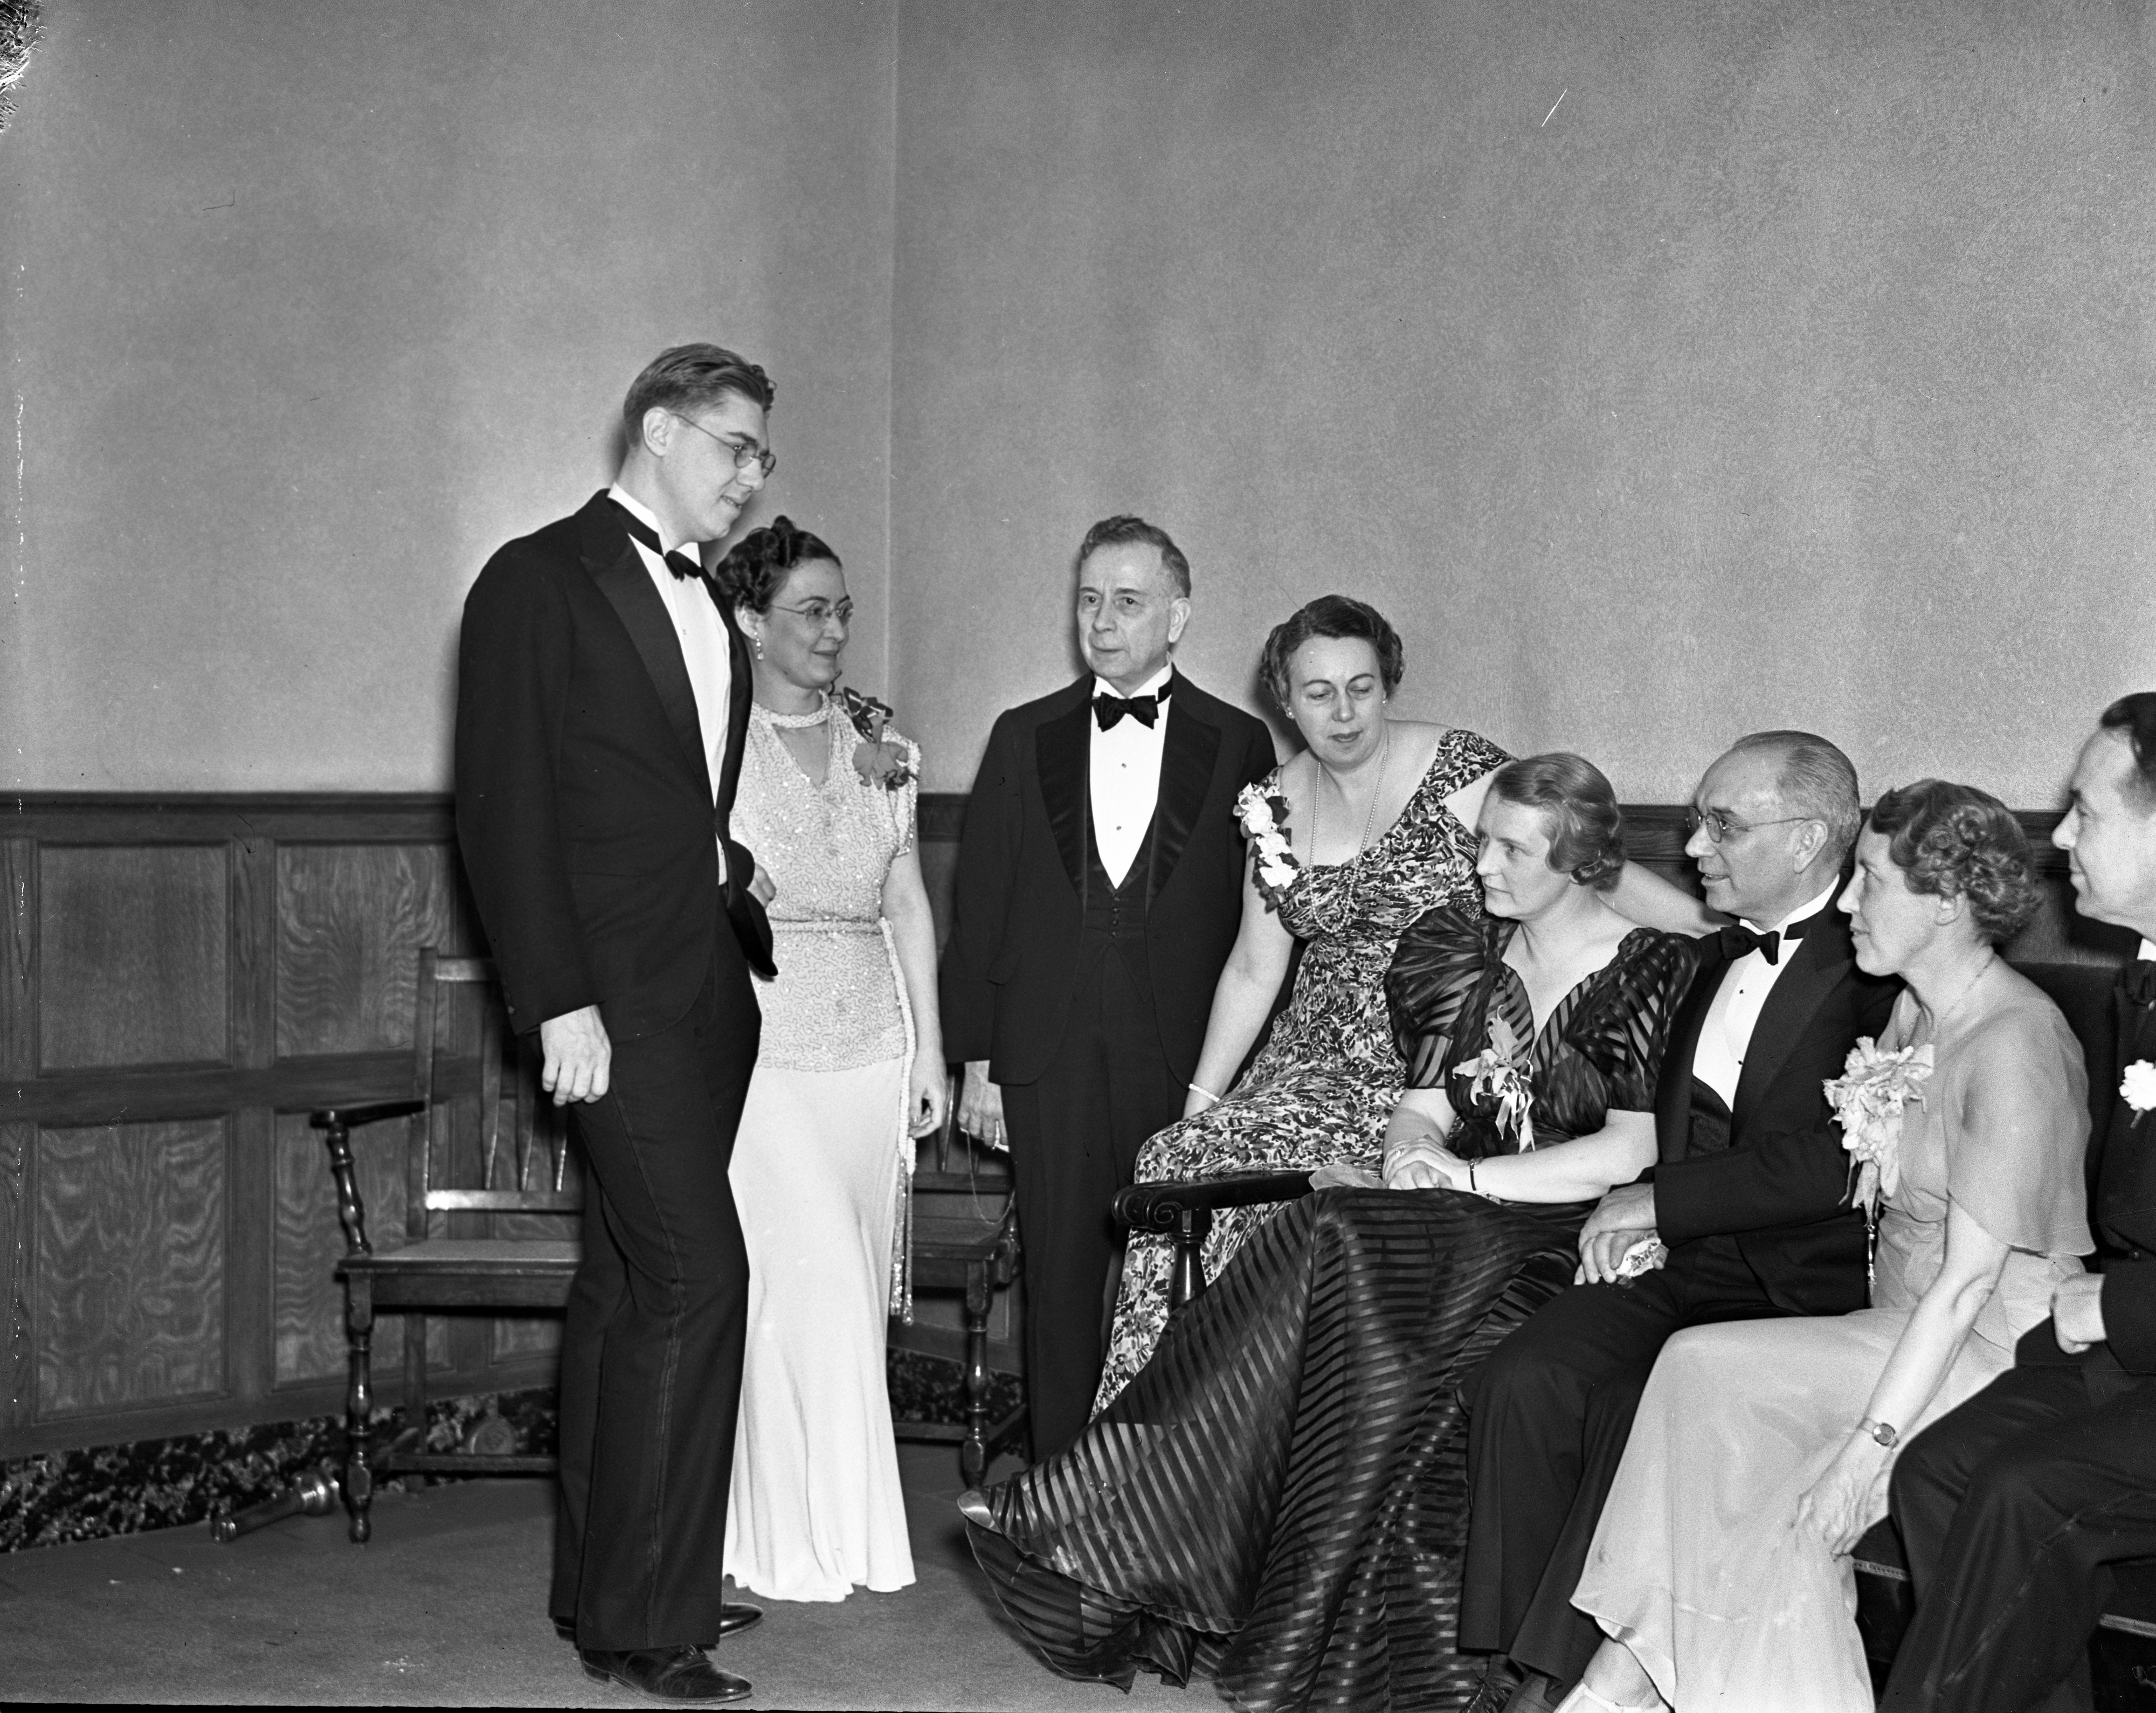 Easter Ball, March 31, 1937 image